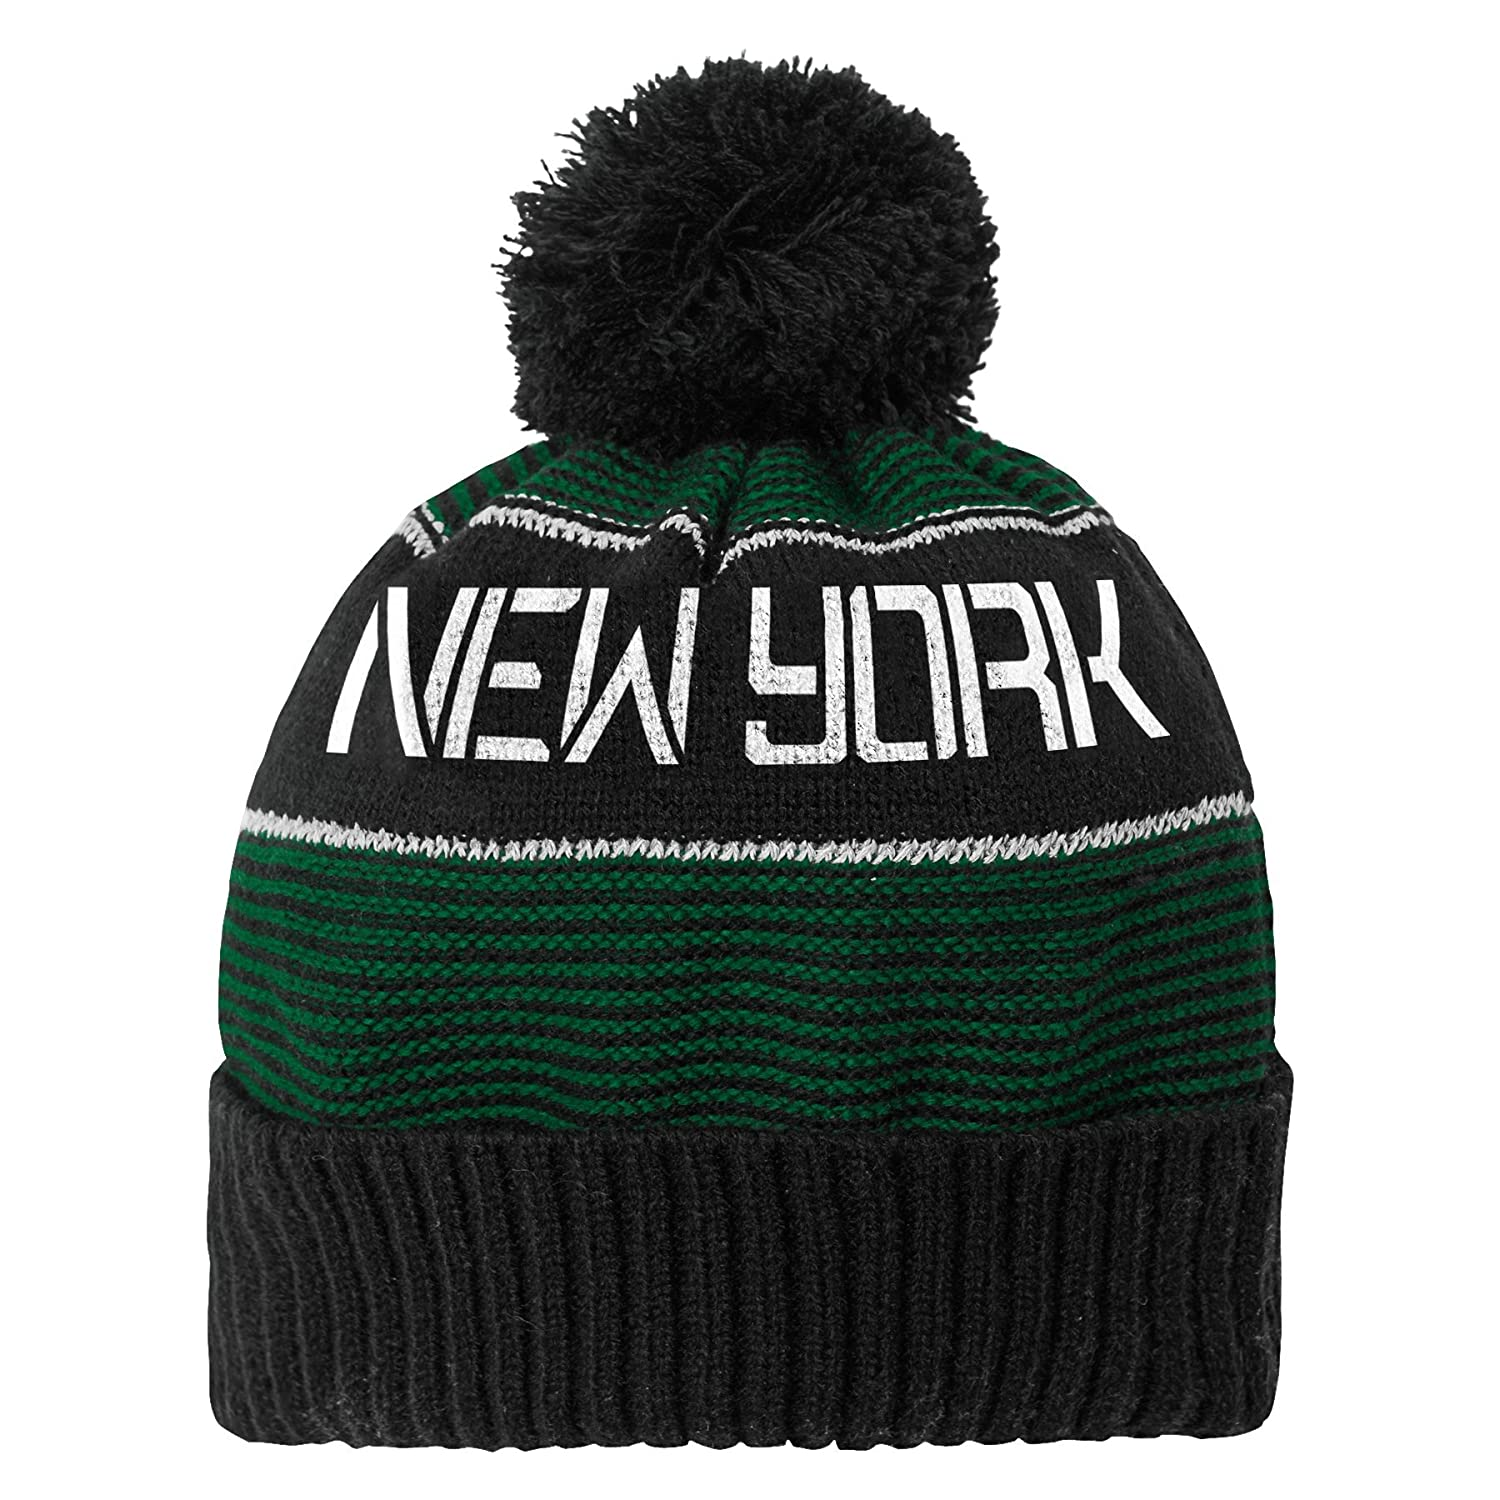 NFL Youth Boys Magna Reflective Cuffed Knit Hat with Pom